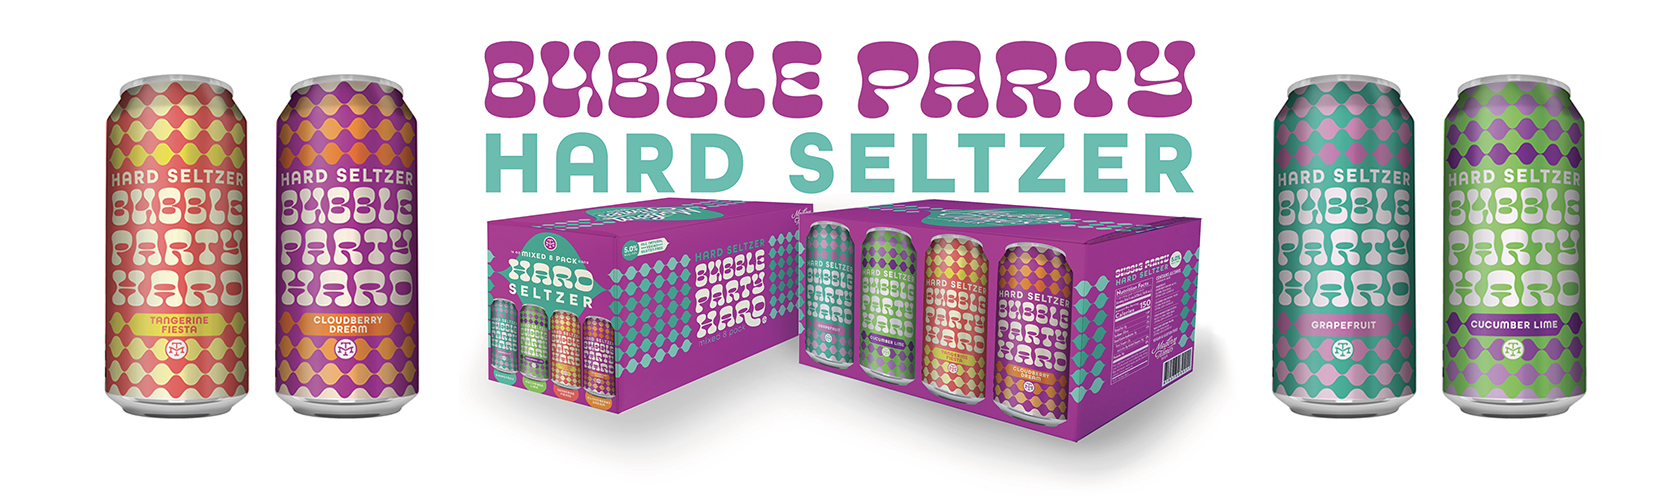 Bubble Party Hard Cans and Case Packaging